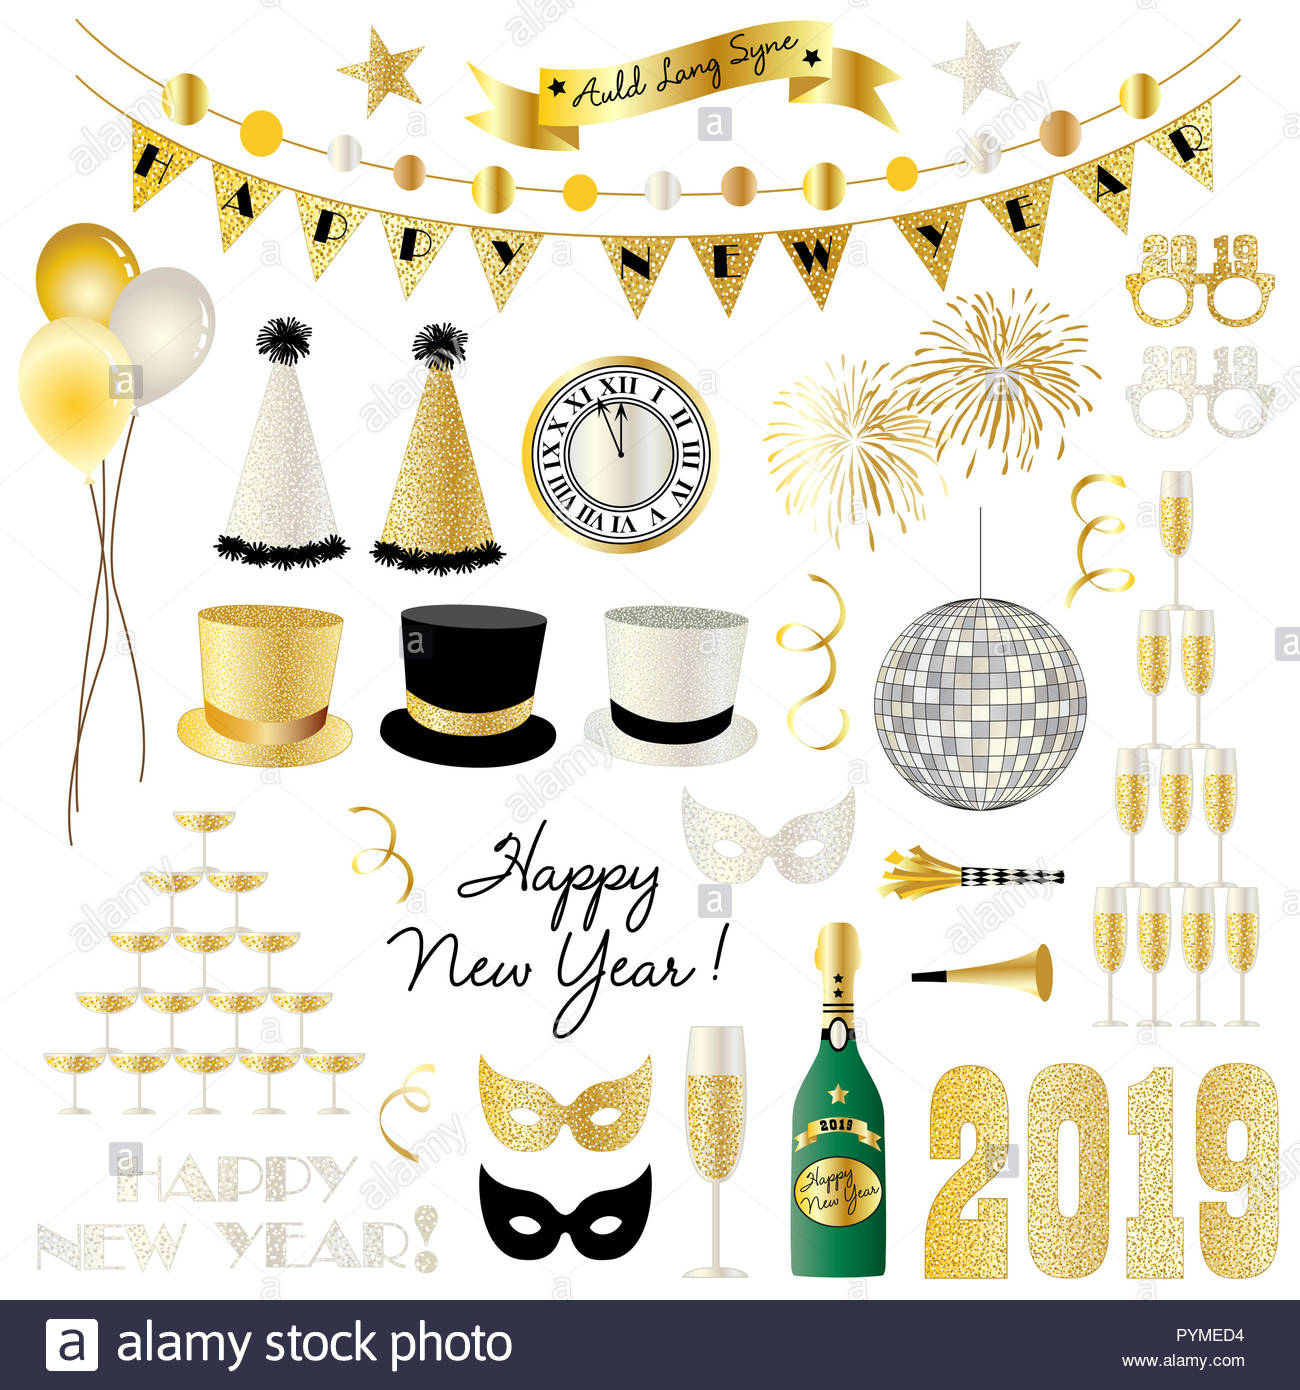 2019 new years eve clipart vector graphics - Stock Image